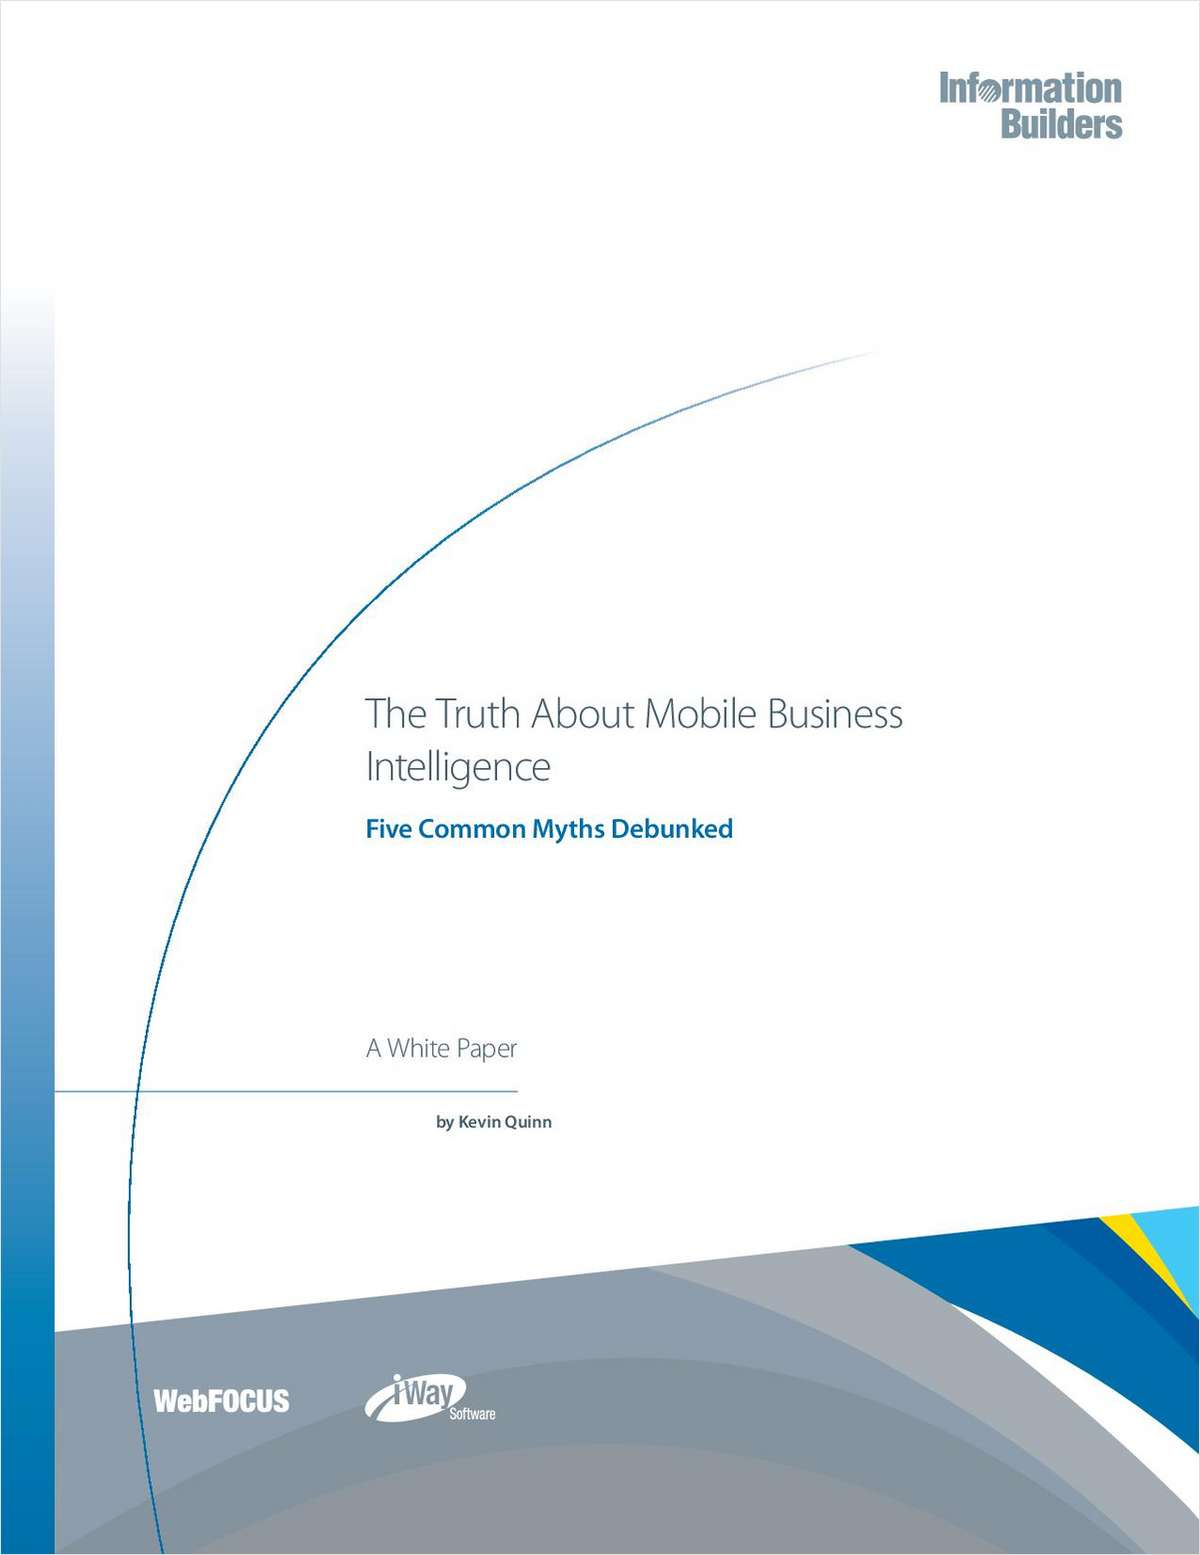 The Truth About Mobile Business Intelligence: Five Common Myths Debunked